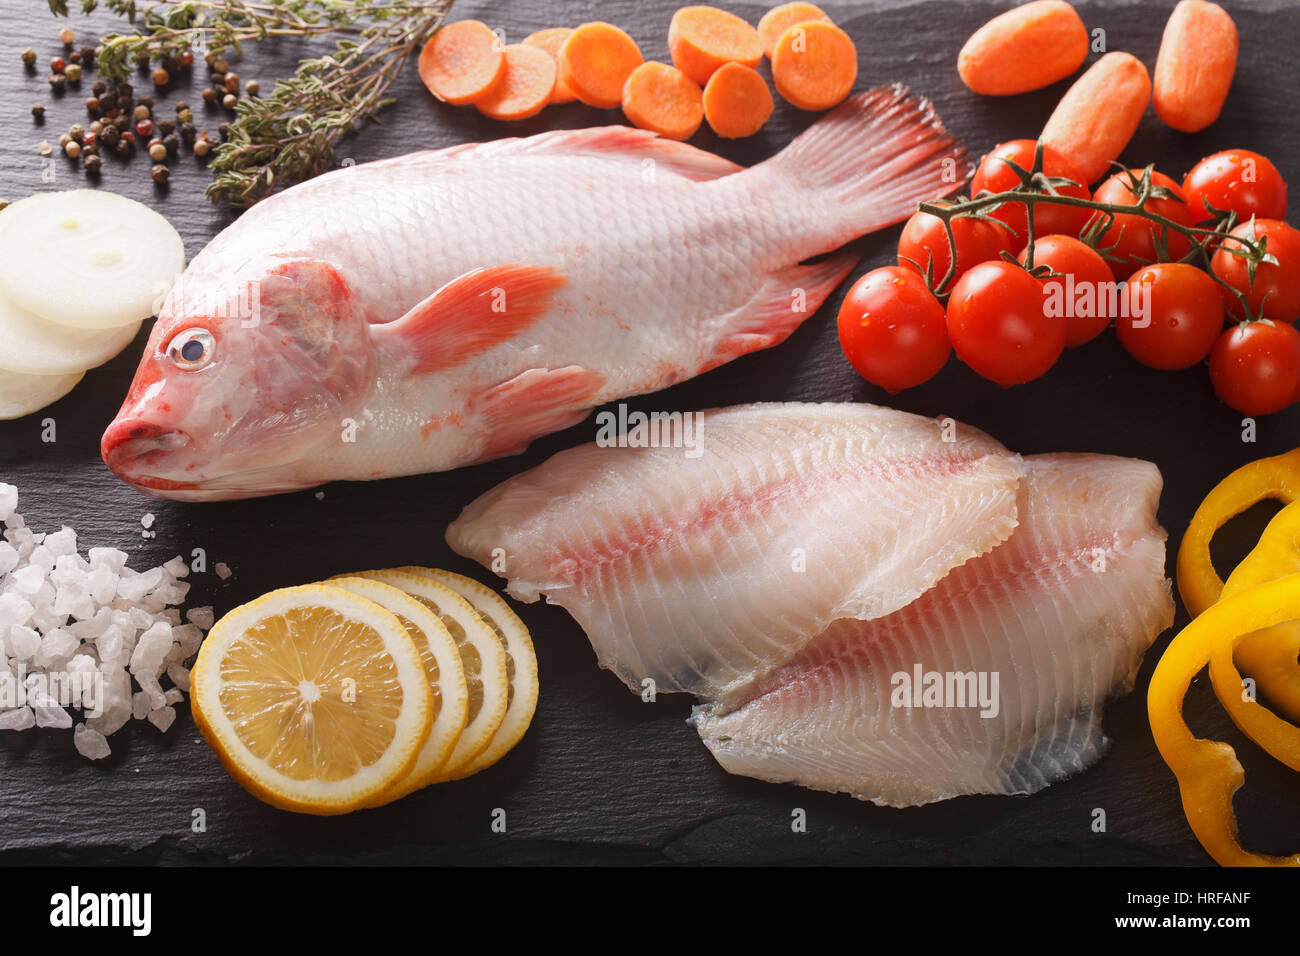 Raw tilapia and vegetable ingredients, spices close-up on the board. horizontal view from above Stock Photo